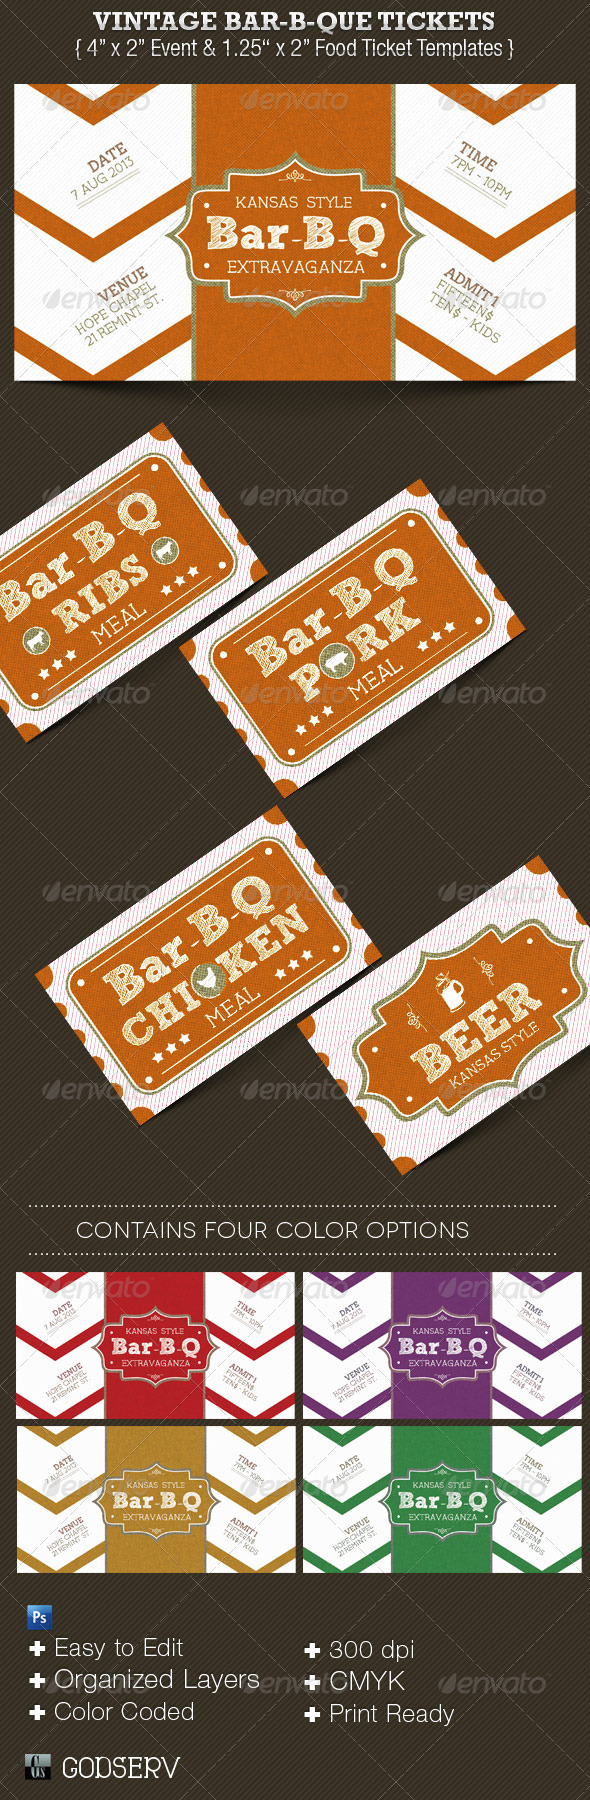 Vintage BarBeQue Ticket Template Set - Miscellaneous Print Templates